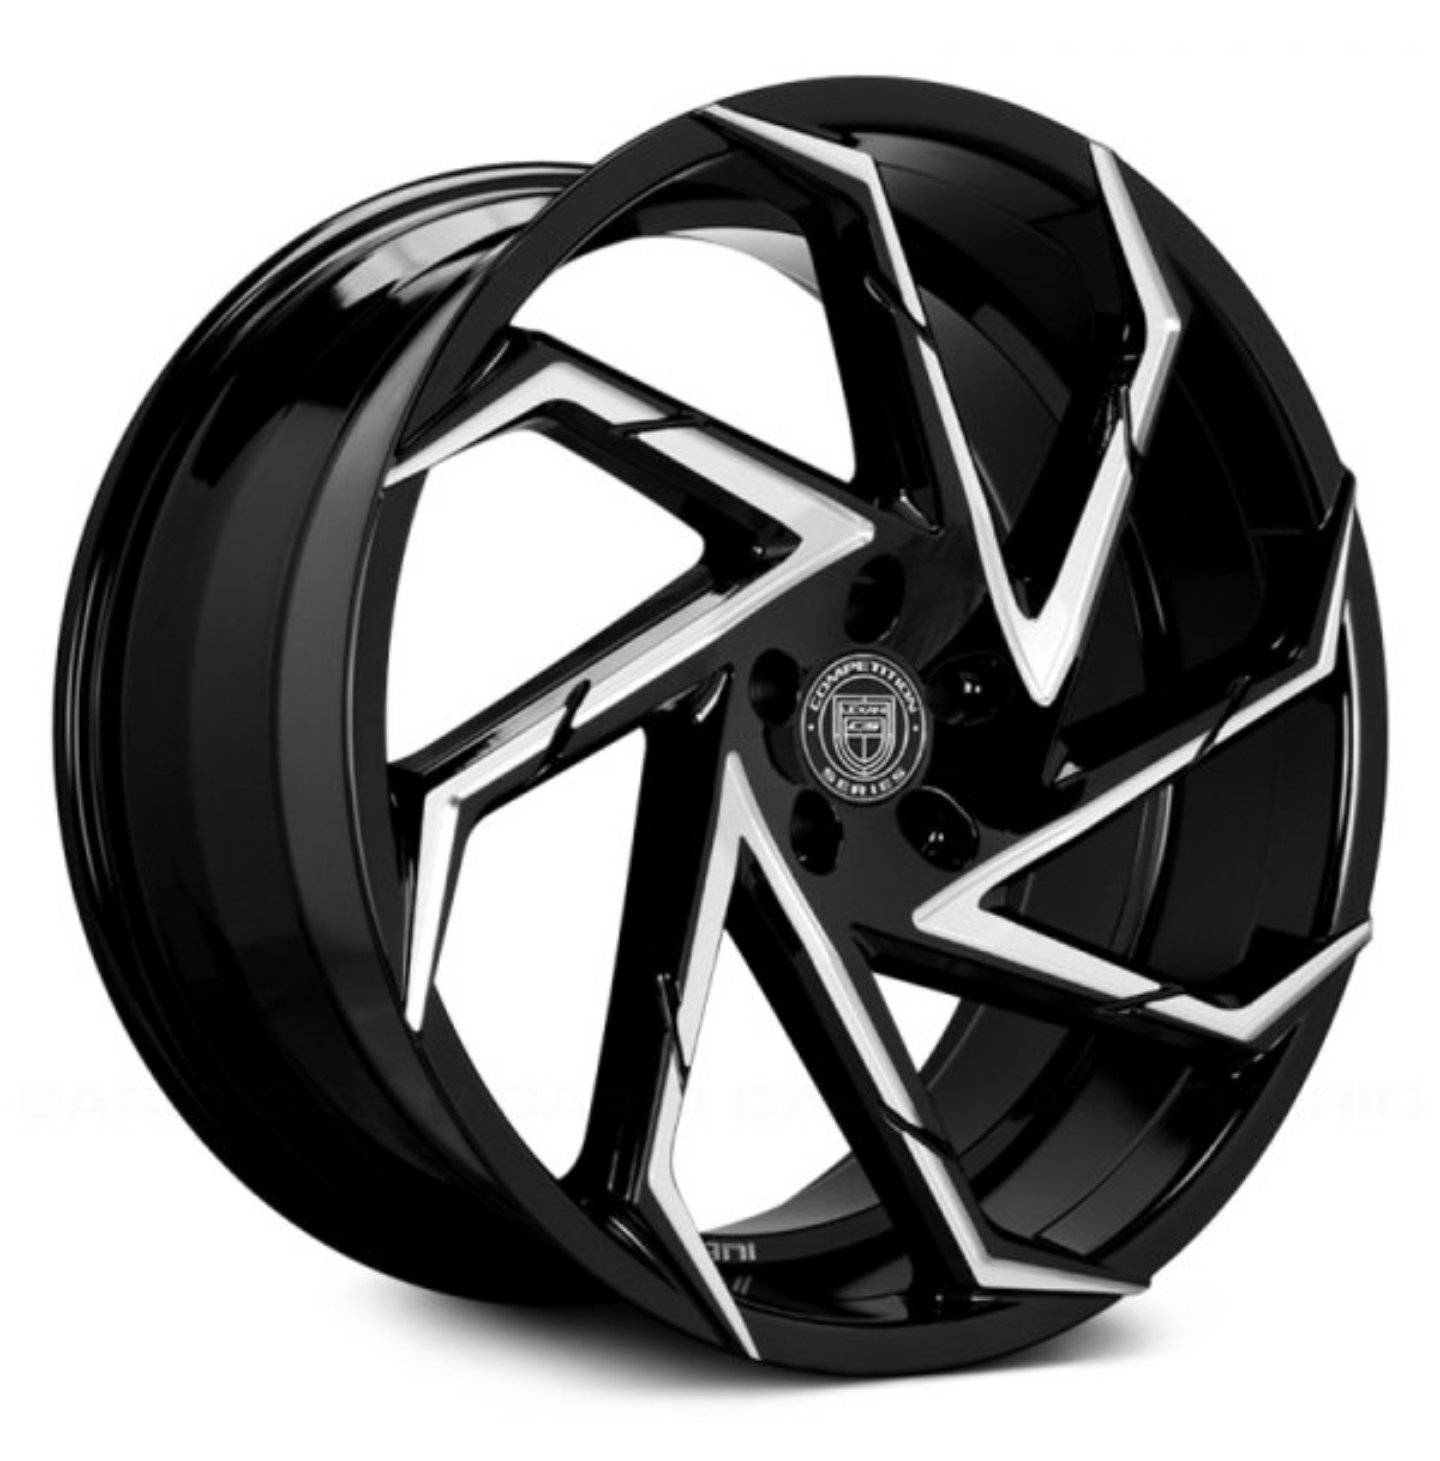 20 inch rims 2016 acura ilx a spec acurazine acura Acura ILX what are the pros and cons to having 20 inch rims vs 19 inch rims will i have to get some type of modification for these to fit if so what